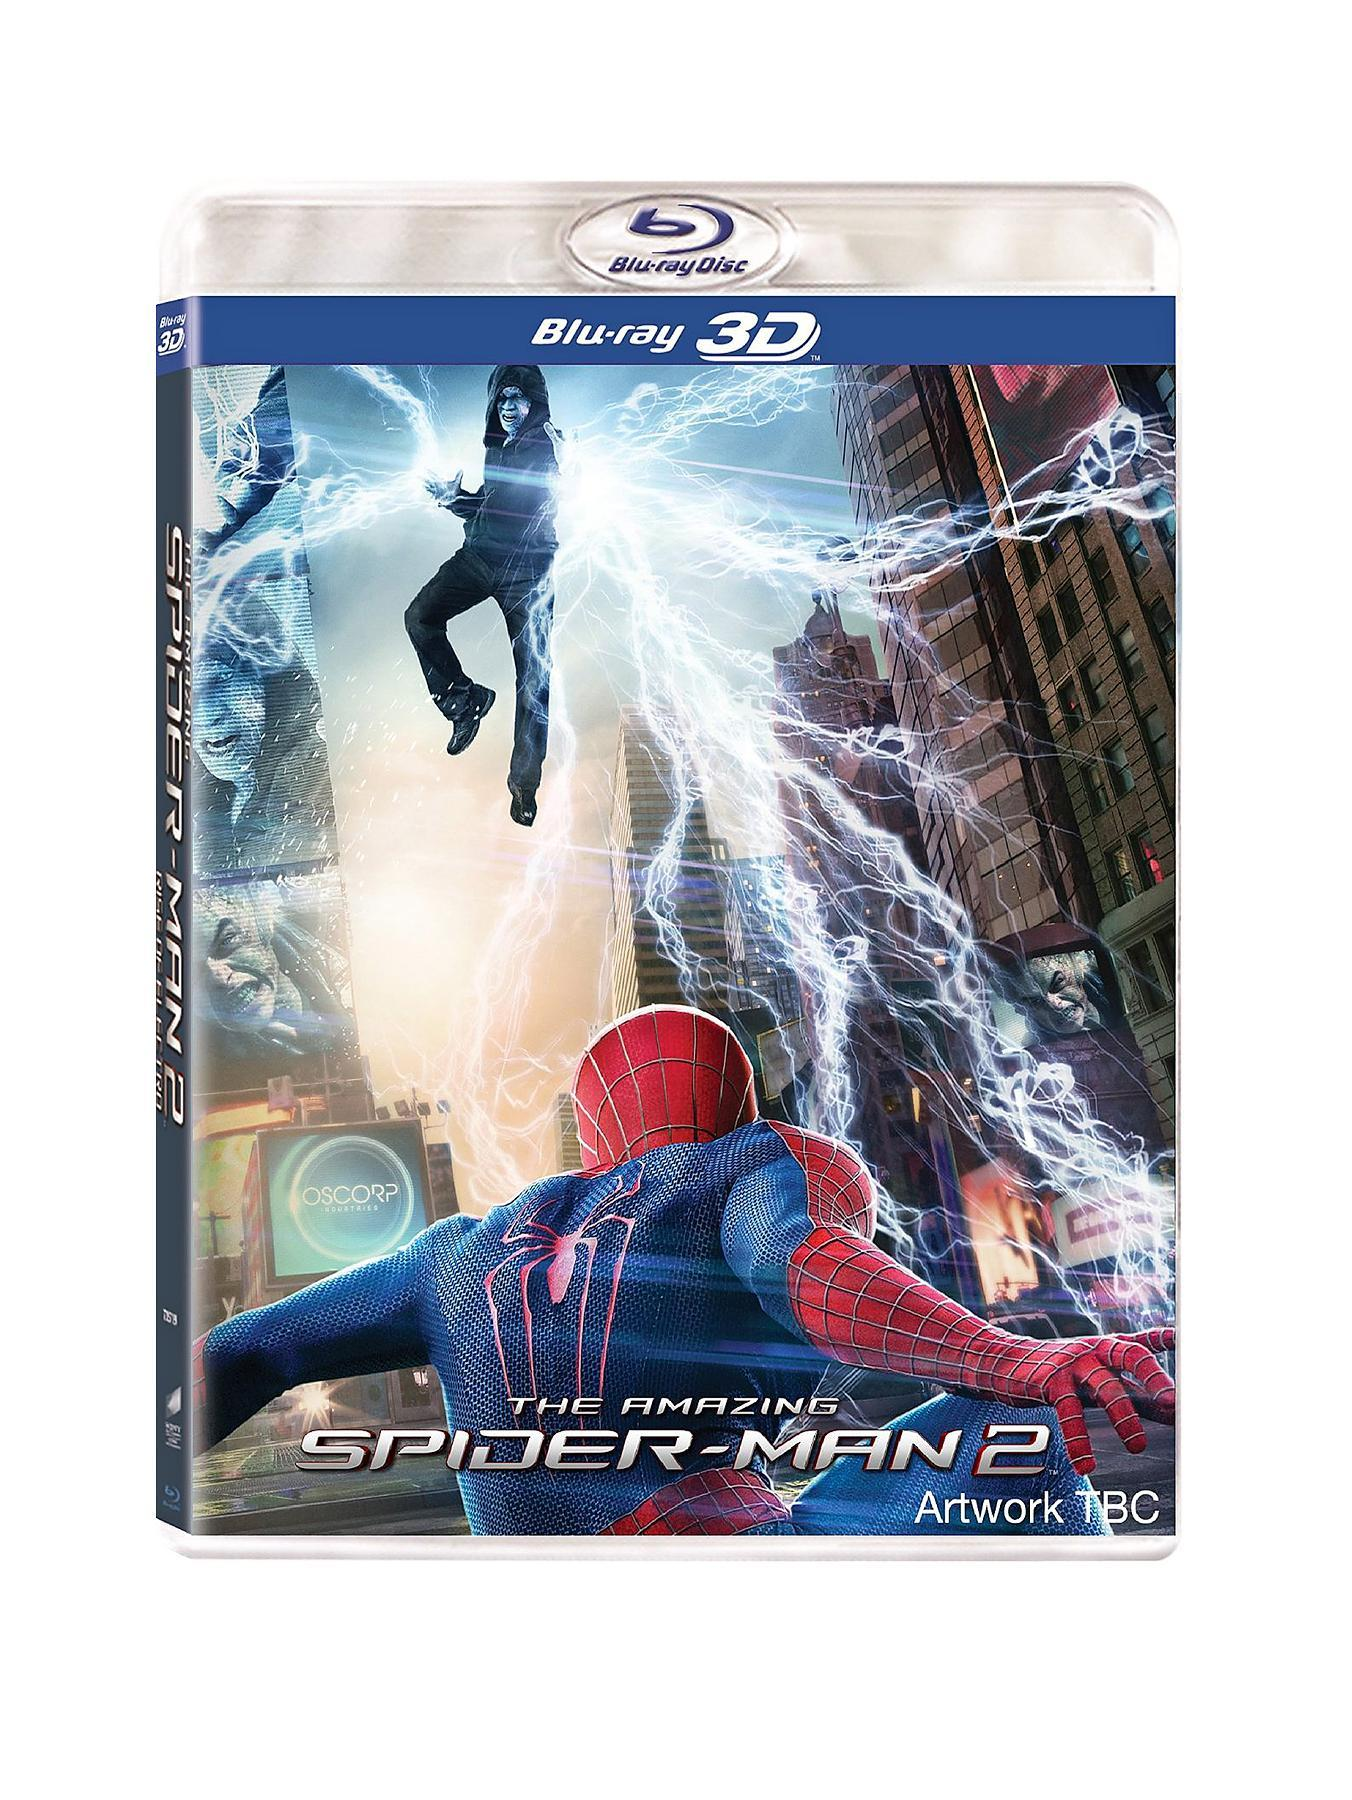 The Amazing Spider-Man 2 3D Blu-ray FREE foldable flying disc